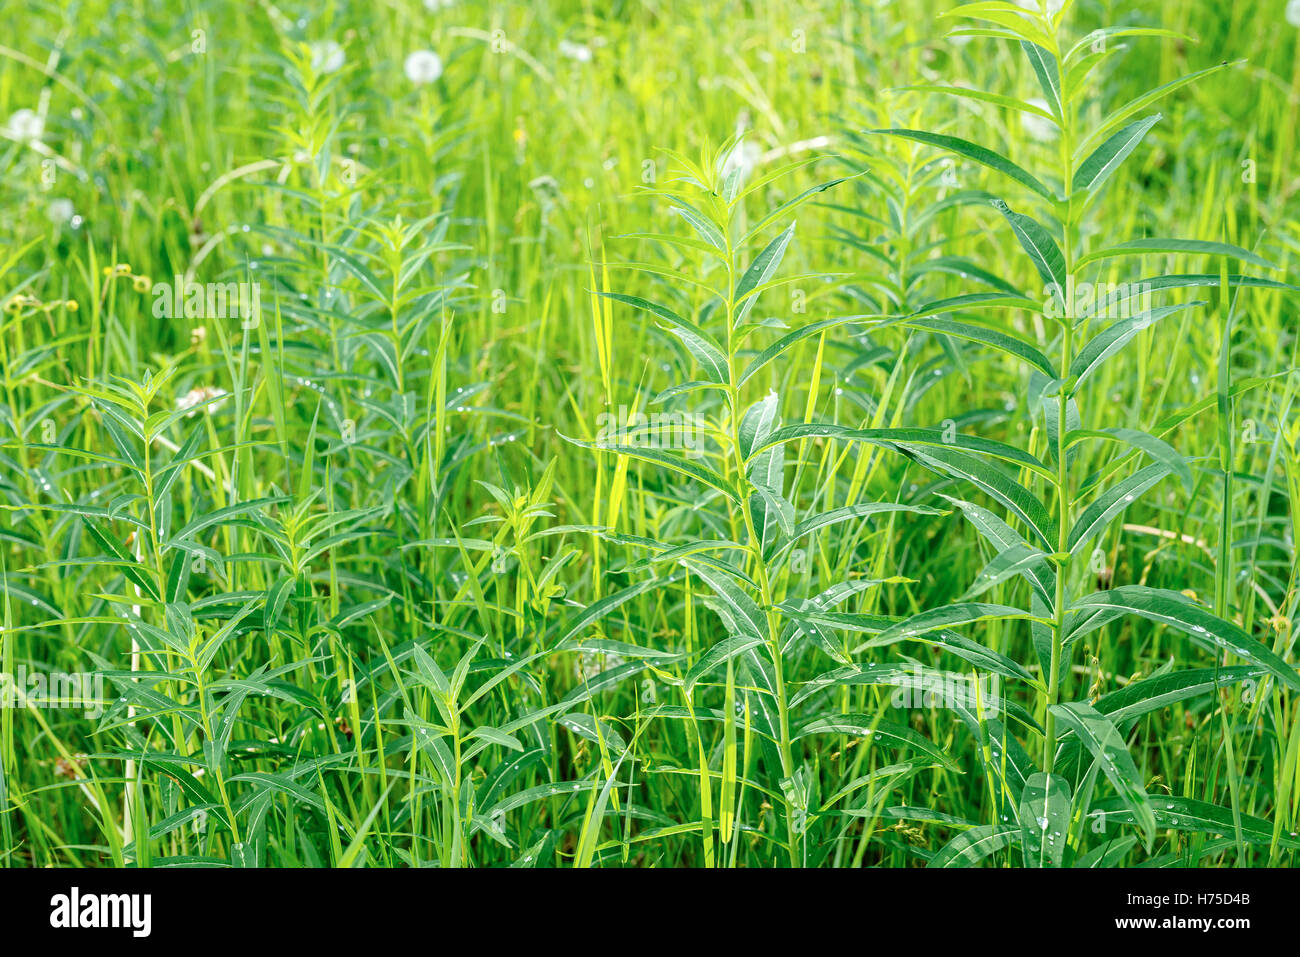 Flowerless fireweed (Chamerion angustifolium) in a grassy meadow near Dawson City, Yukon, Canada - Stock Image